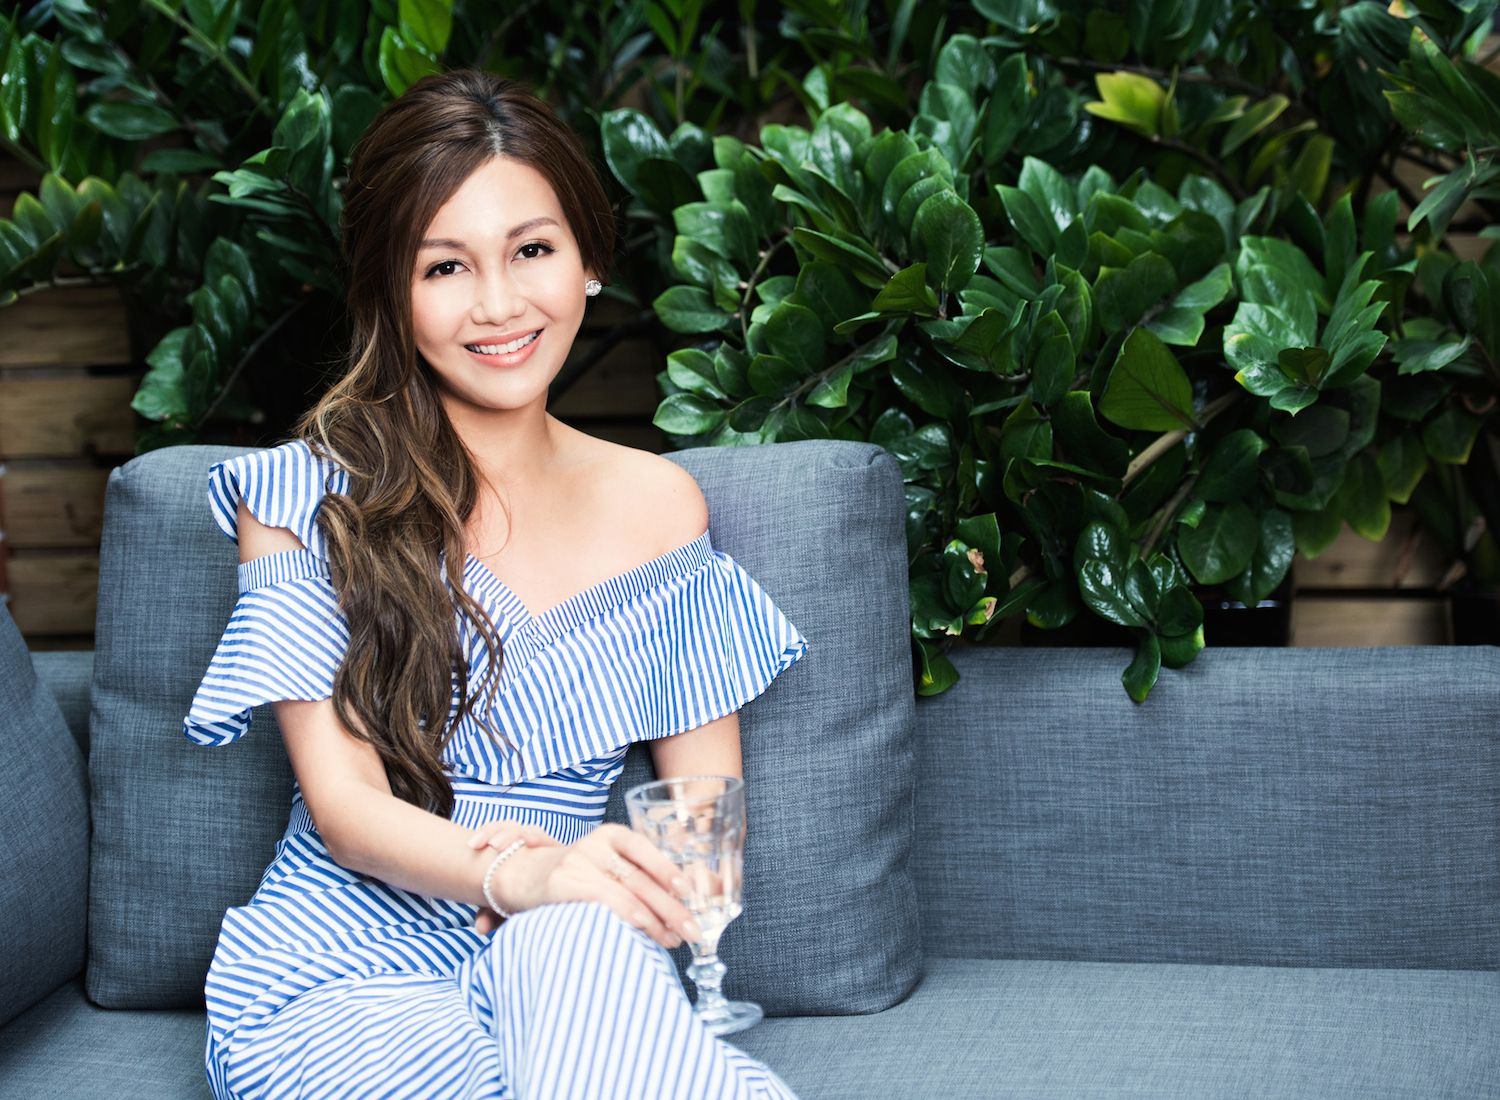 The Tatler 10: Lelian Chew of The Wedding Atelier & The Floral Atelier